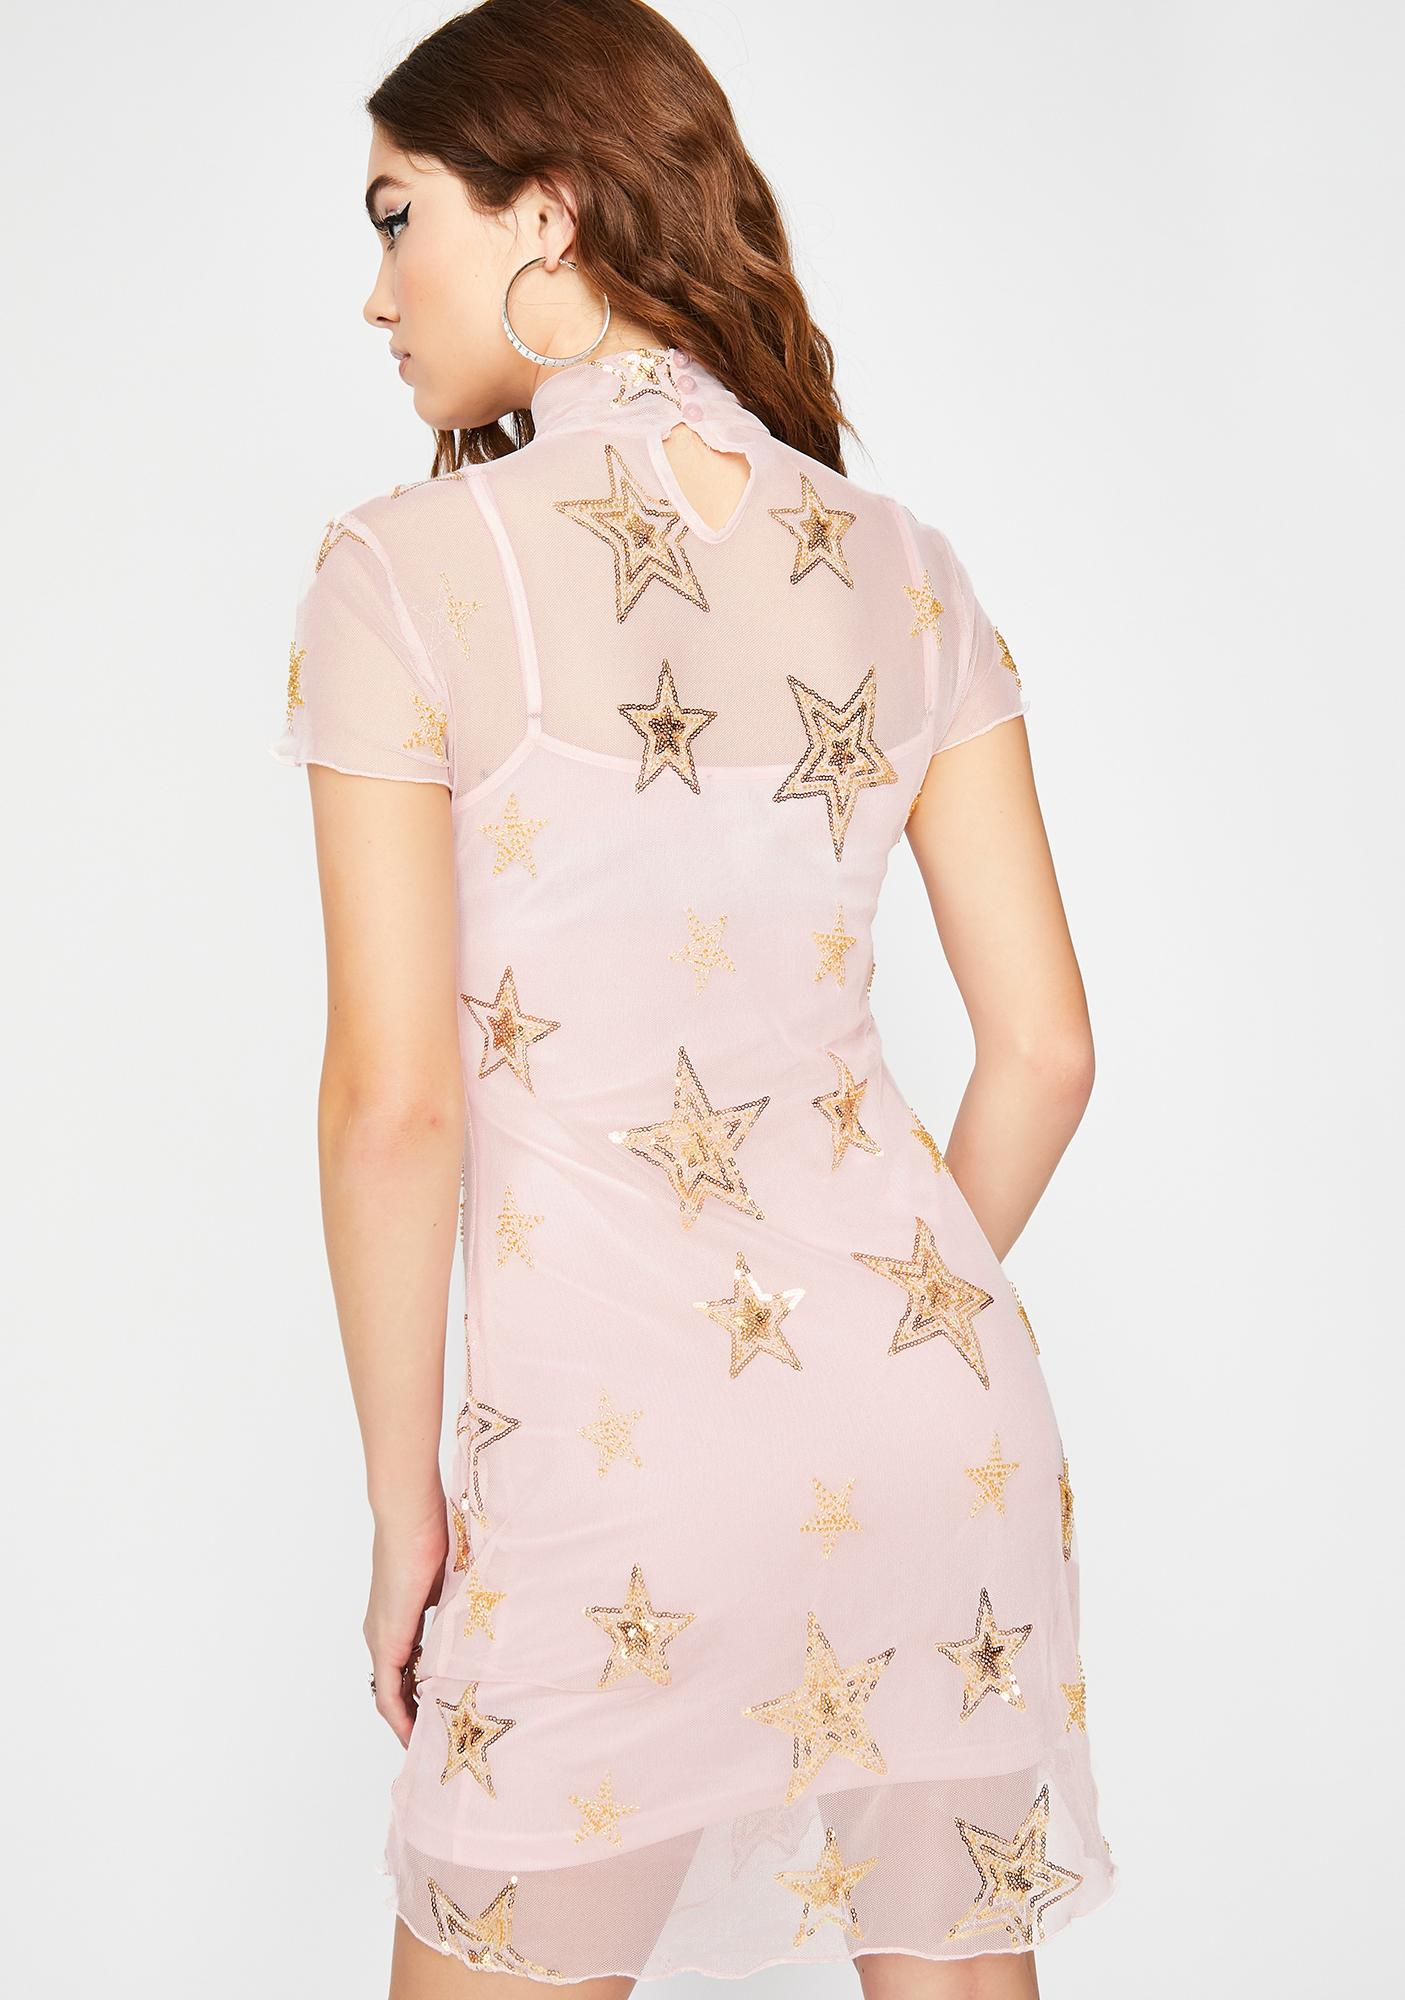 HOROSCOPEZ Blame The Stars Mesh Dress